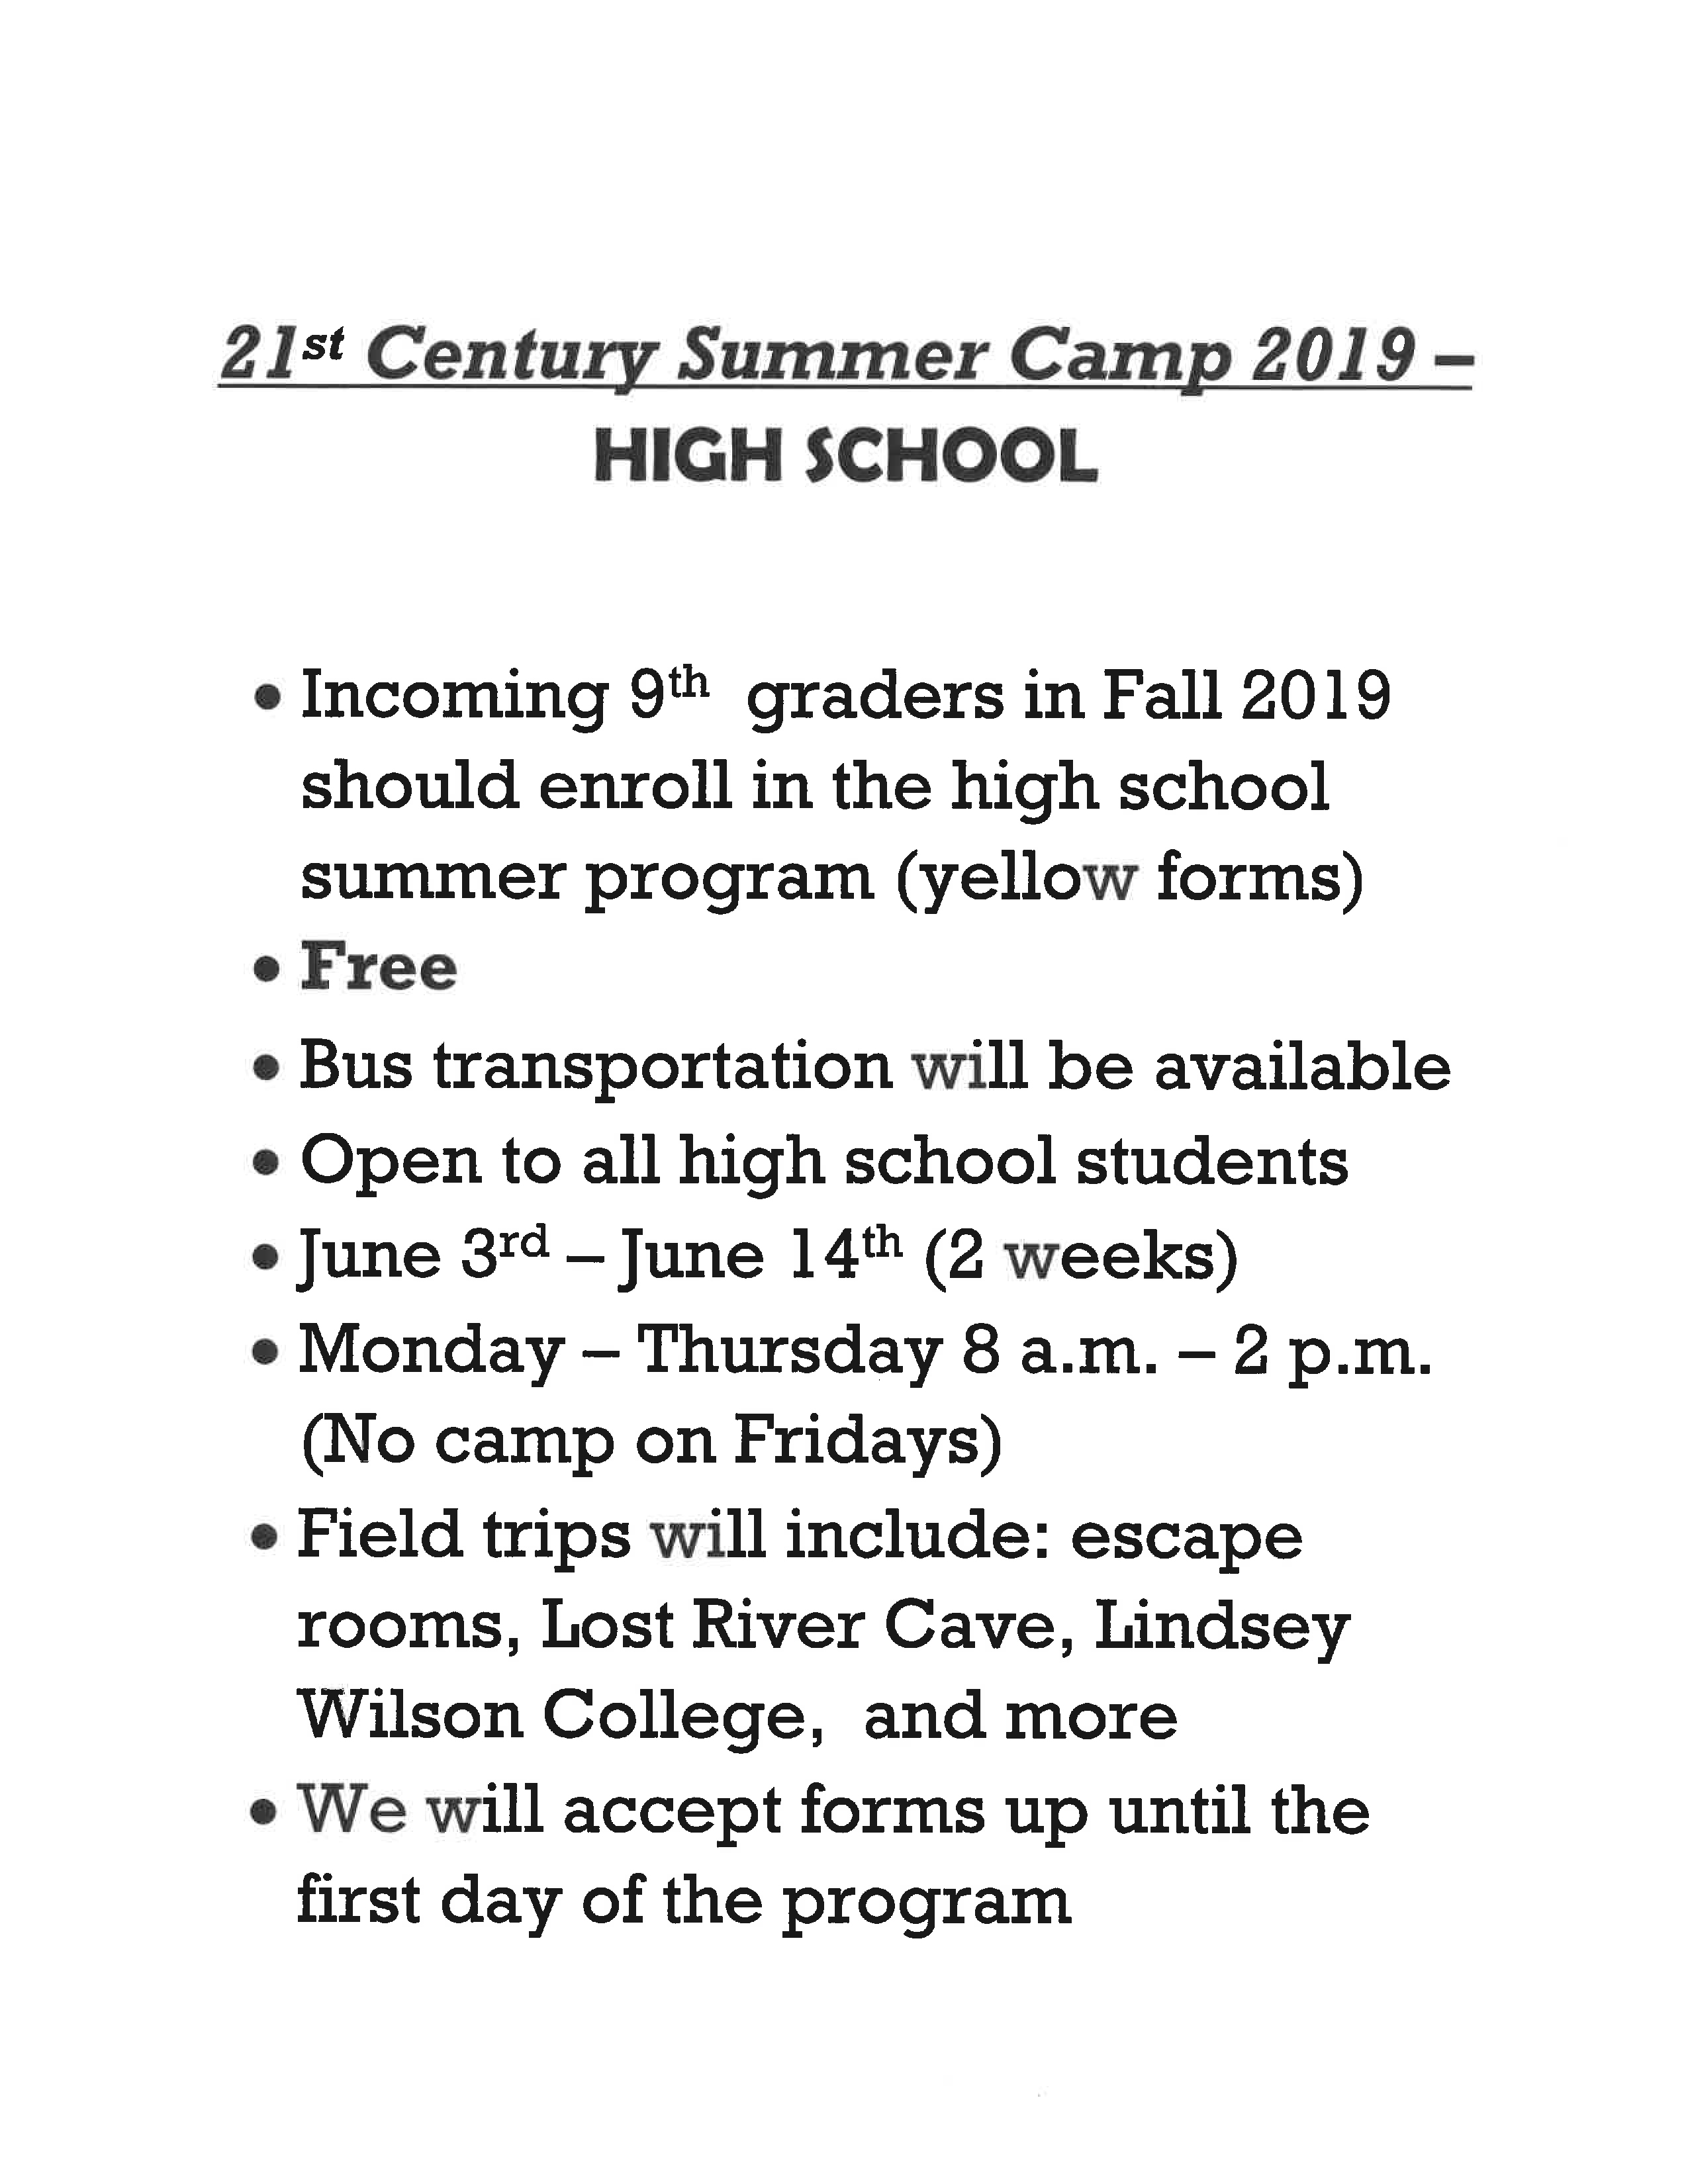 21st Century Summer Program